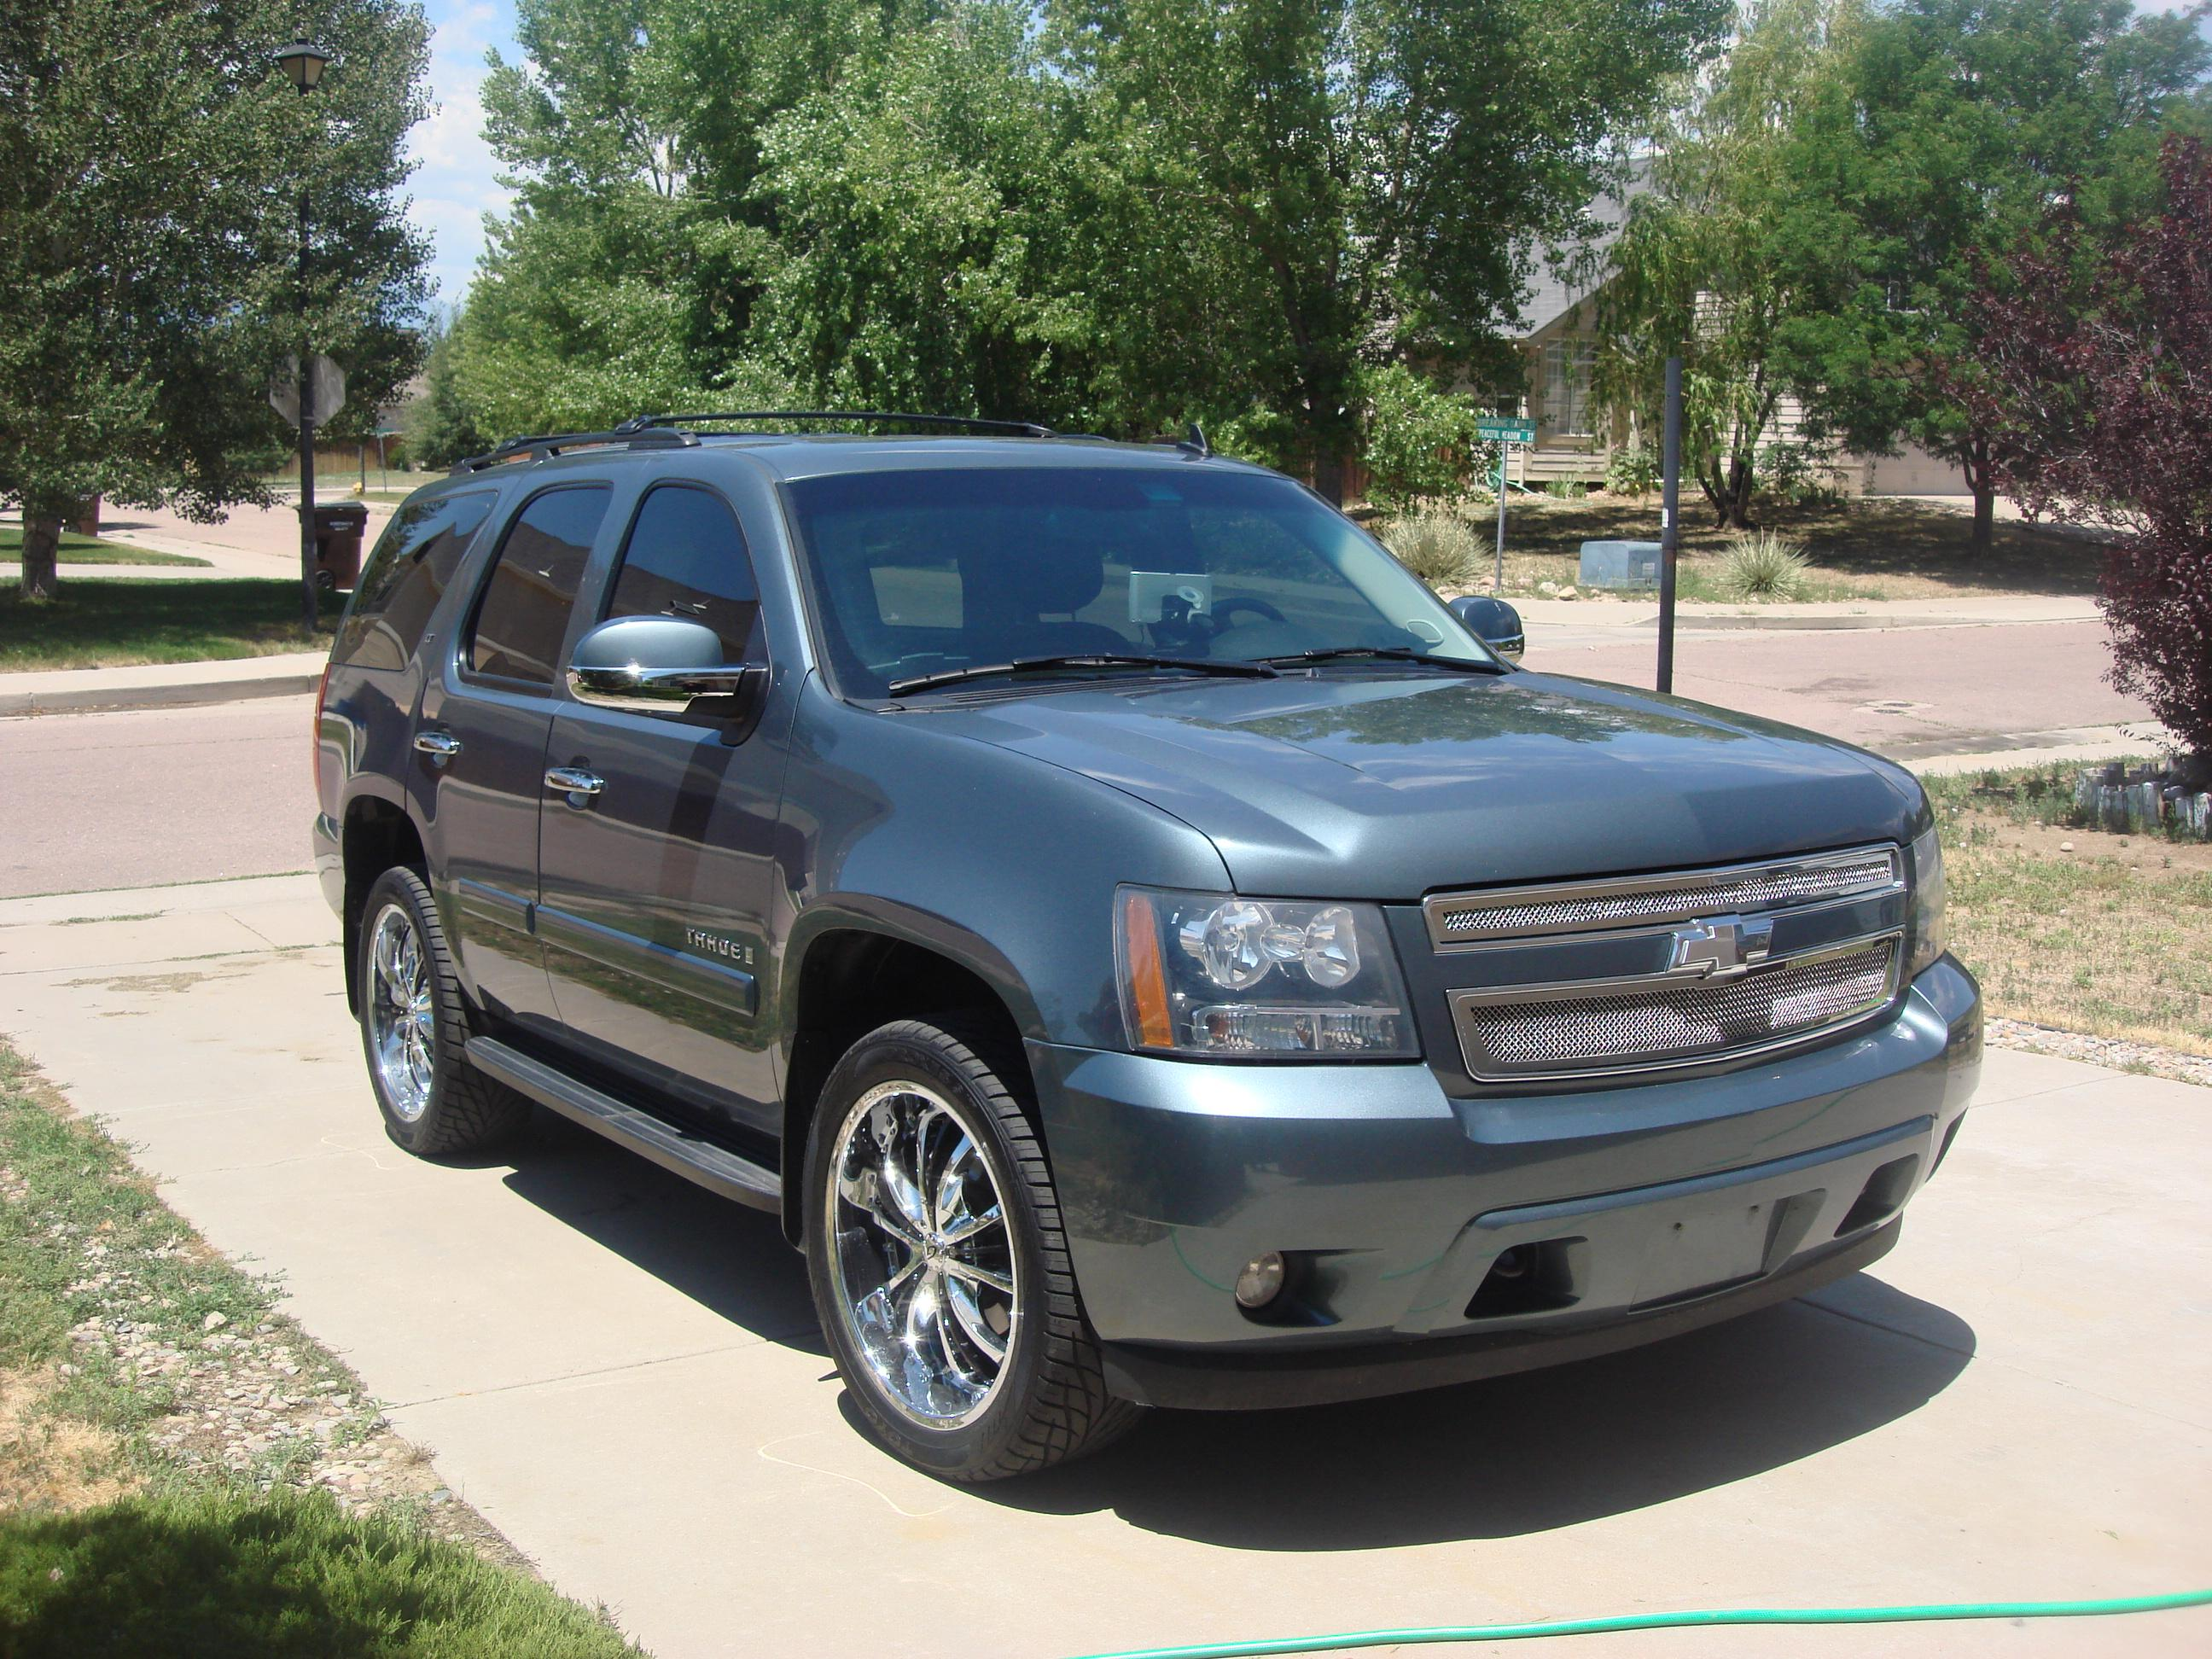 jlouis2 2008 chevrolet tahoe specs photos modification info at cardomain. Black Bedroom Furniture Sets. Home Design Ideas